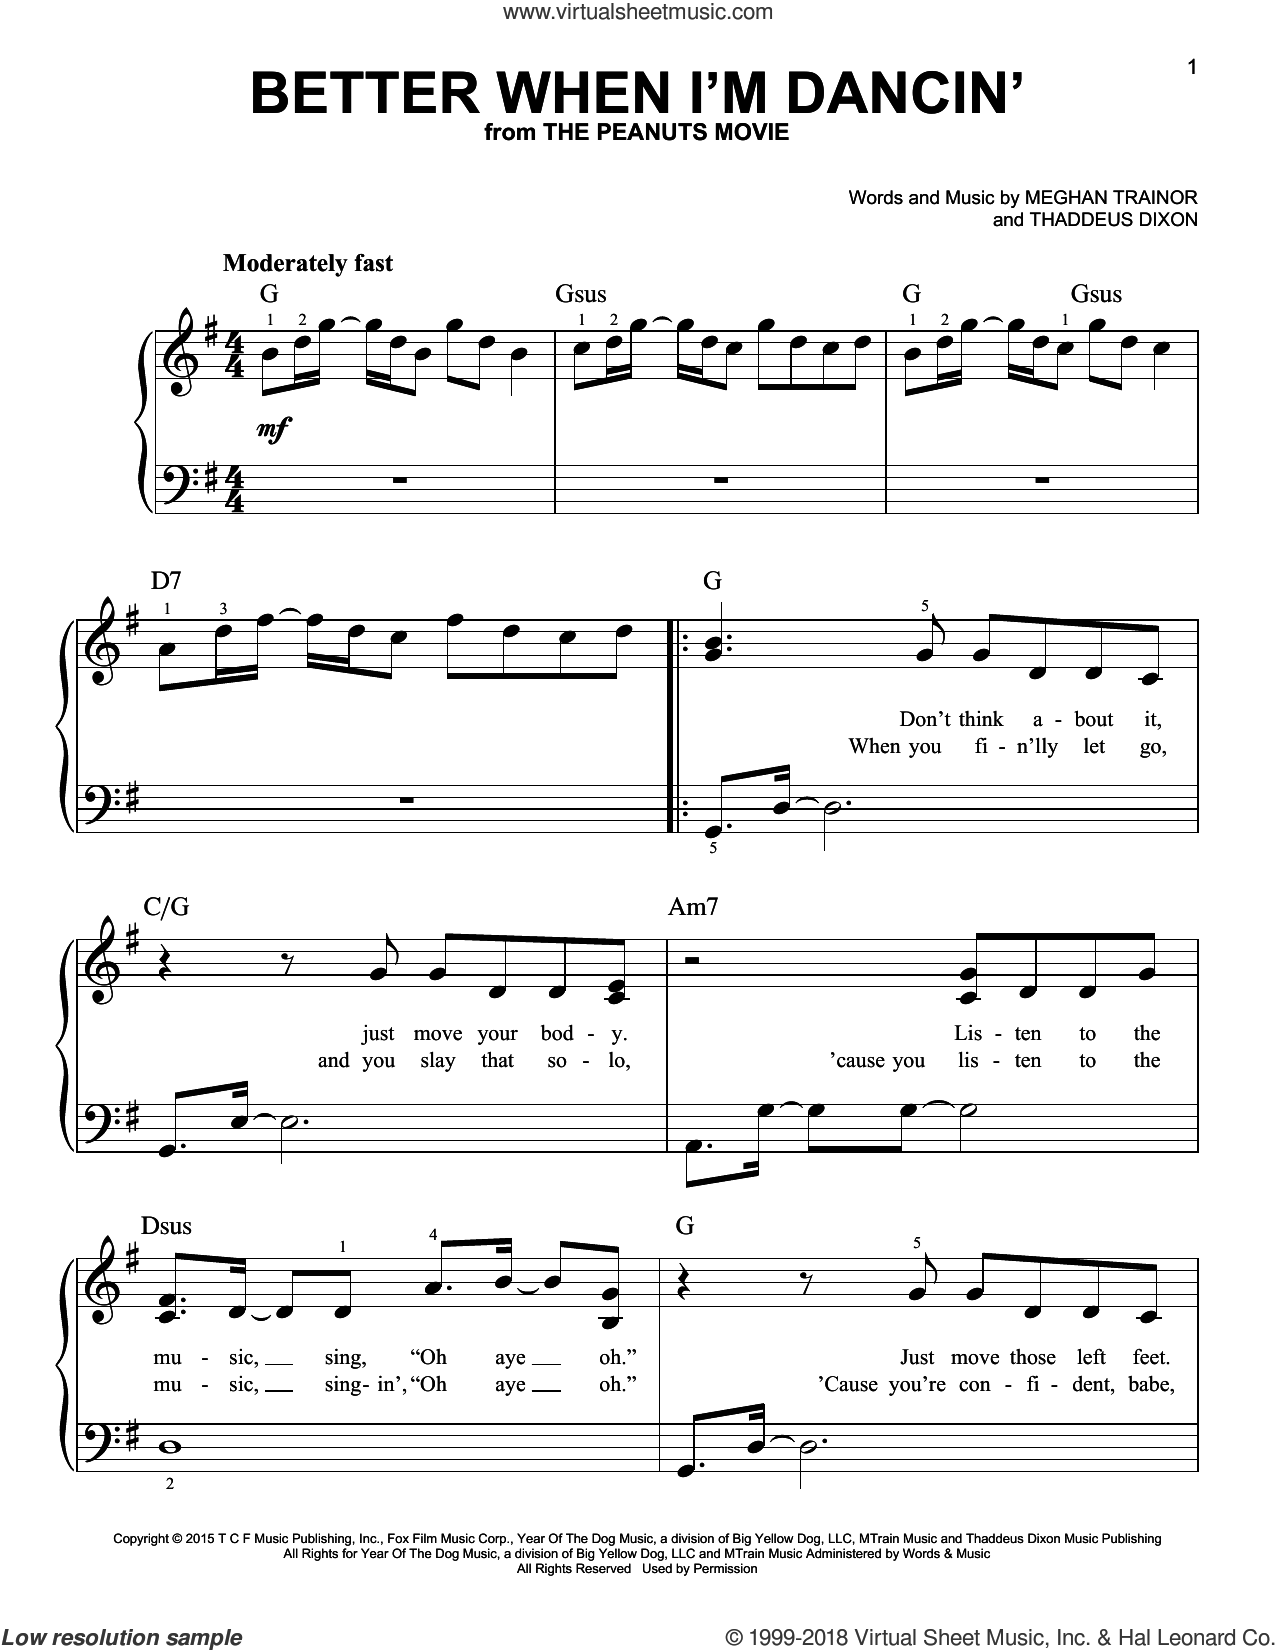 Better When I'm Dancin' sheet music for piano solo by Meghan Trainor and Thaddeus Dixon, beginner skill level